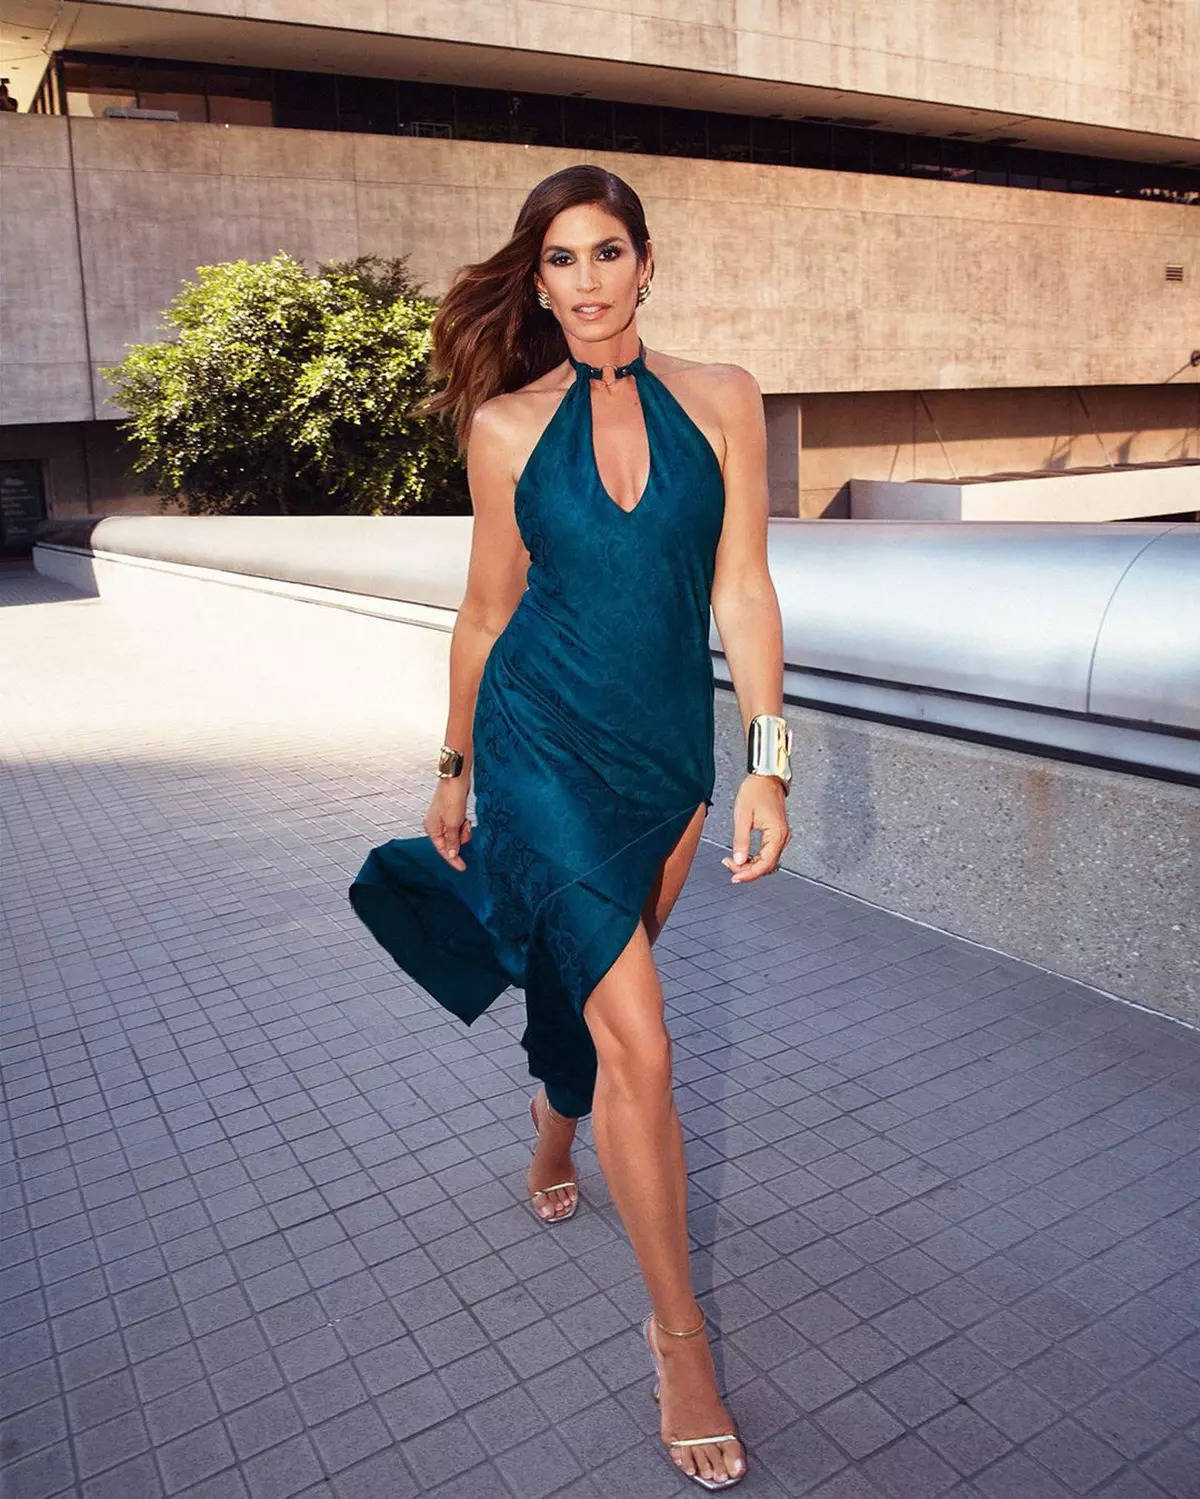 Cindy Crawford's most stylish moments in photos that prove the supermodel is everyone's ultimate fashion idol